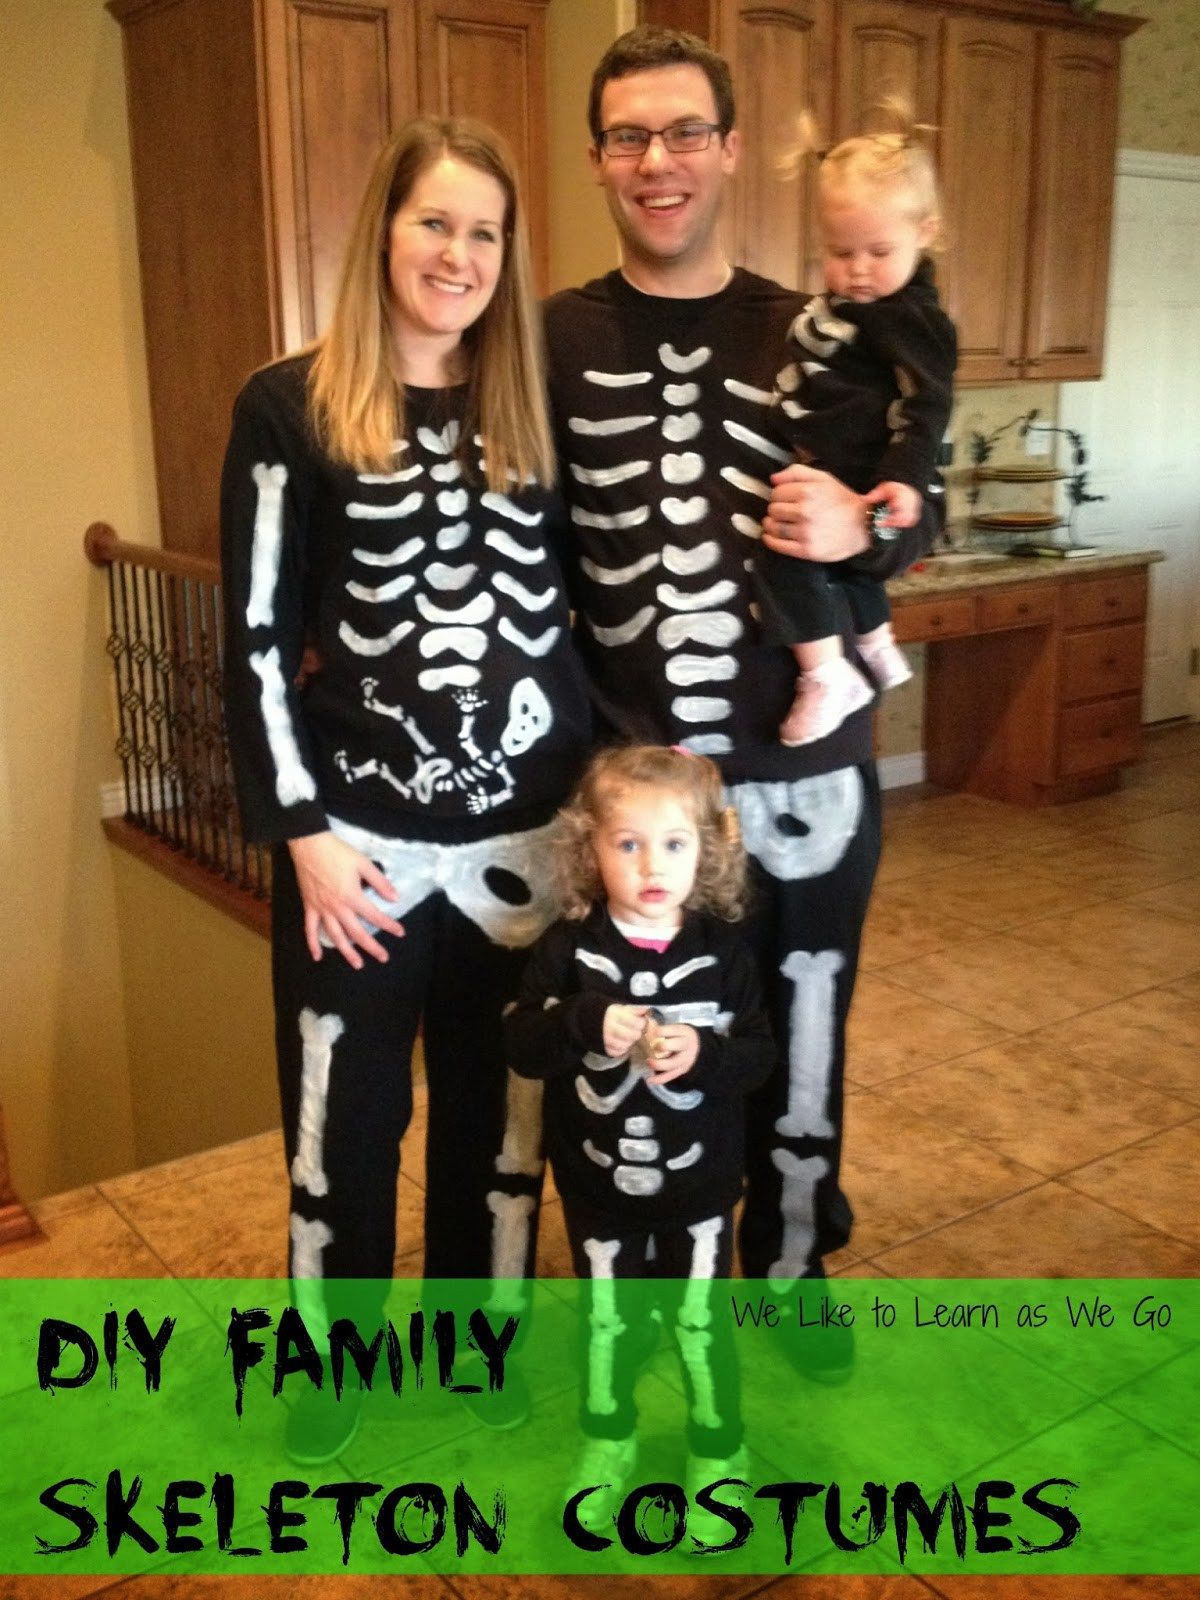 Weu0027ve been doing themed family Halloween costumes the last few years. Alan thinks this may be our last one since our girls will probably start getting more ...  sc 1 st  Pinterest & Easy DIY Skeleton Family Costumes | Pinterest | Family halloween ...